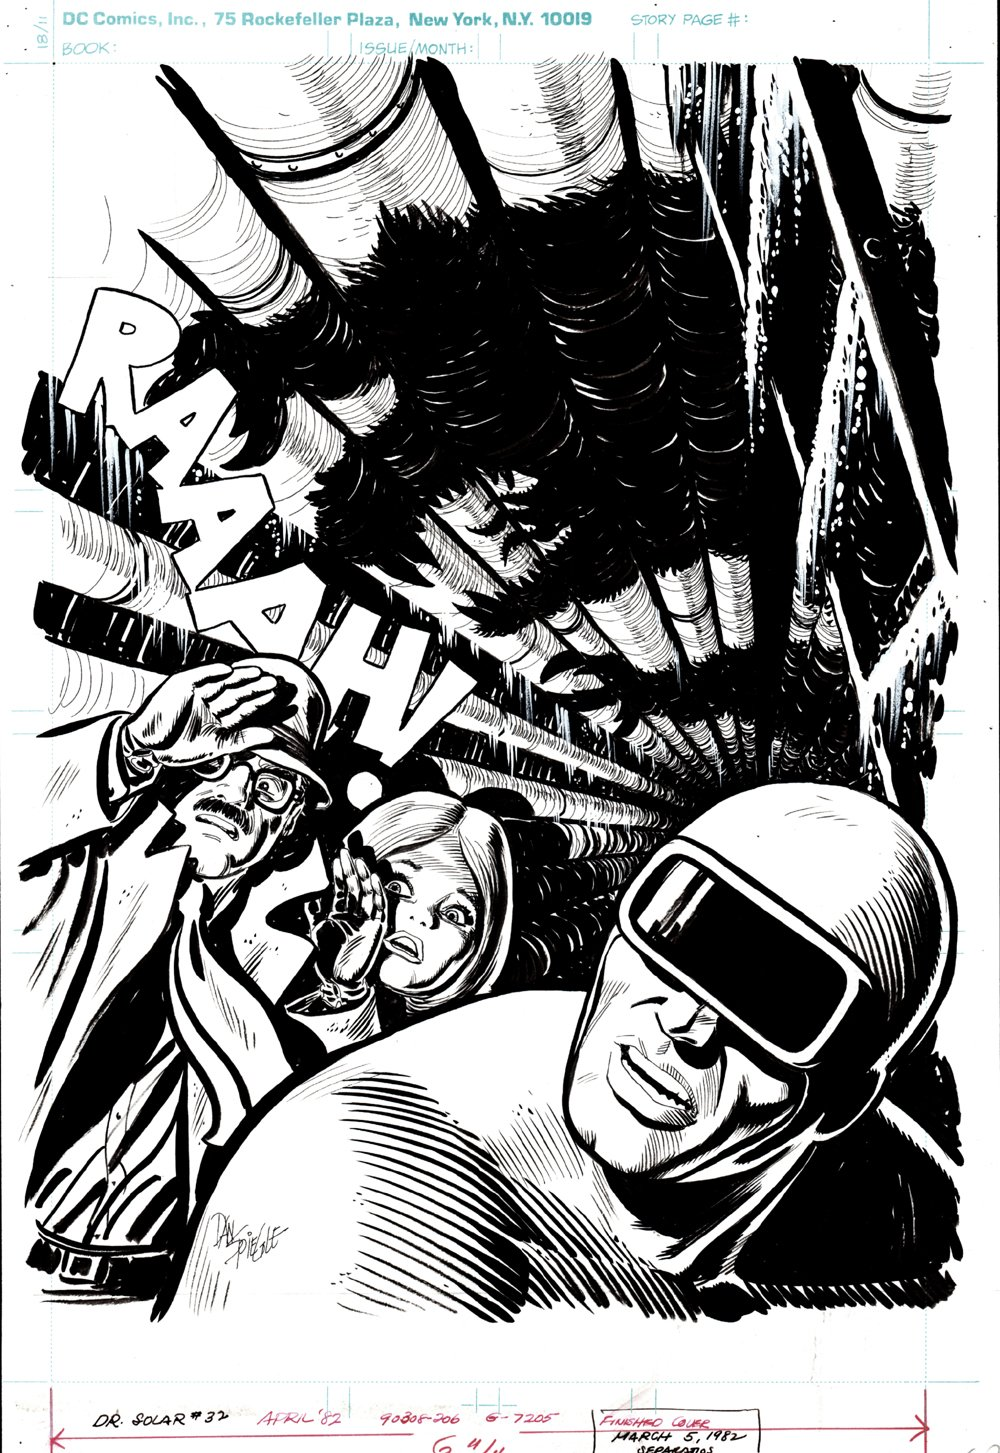 Doctor Solar, Man of the Atom #32 Cover (SOLD LIVE ON THE ROMITAMAN ART DROP PODCAST ON 10-9-2021)